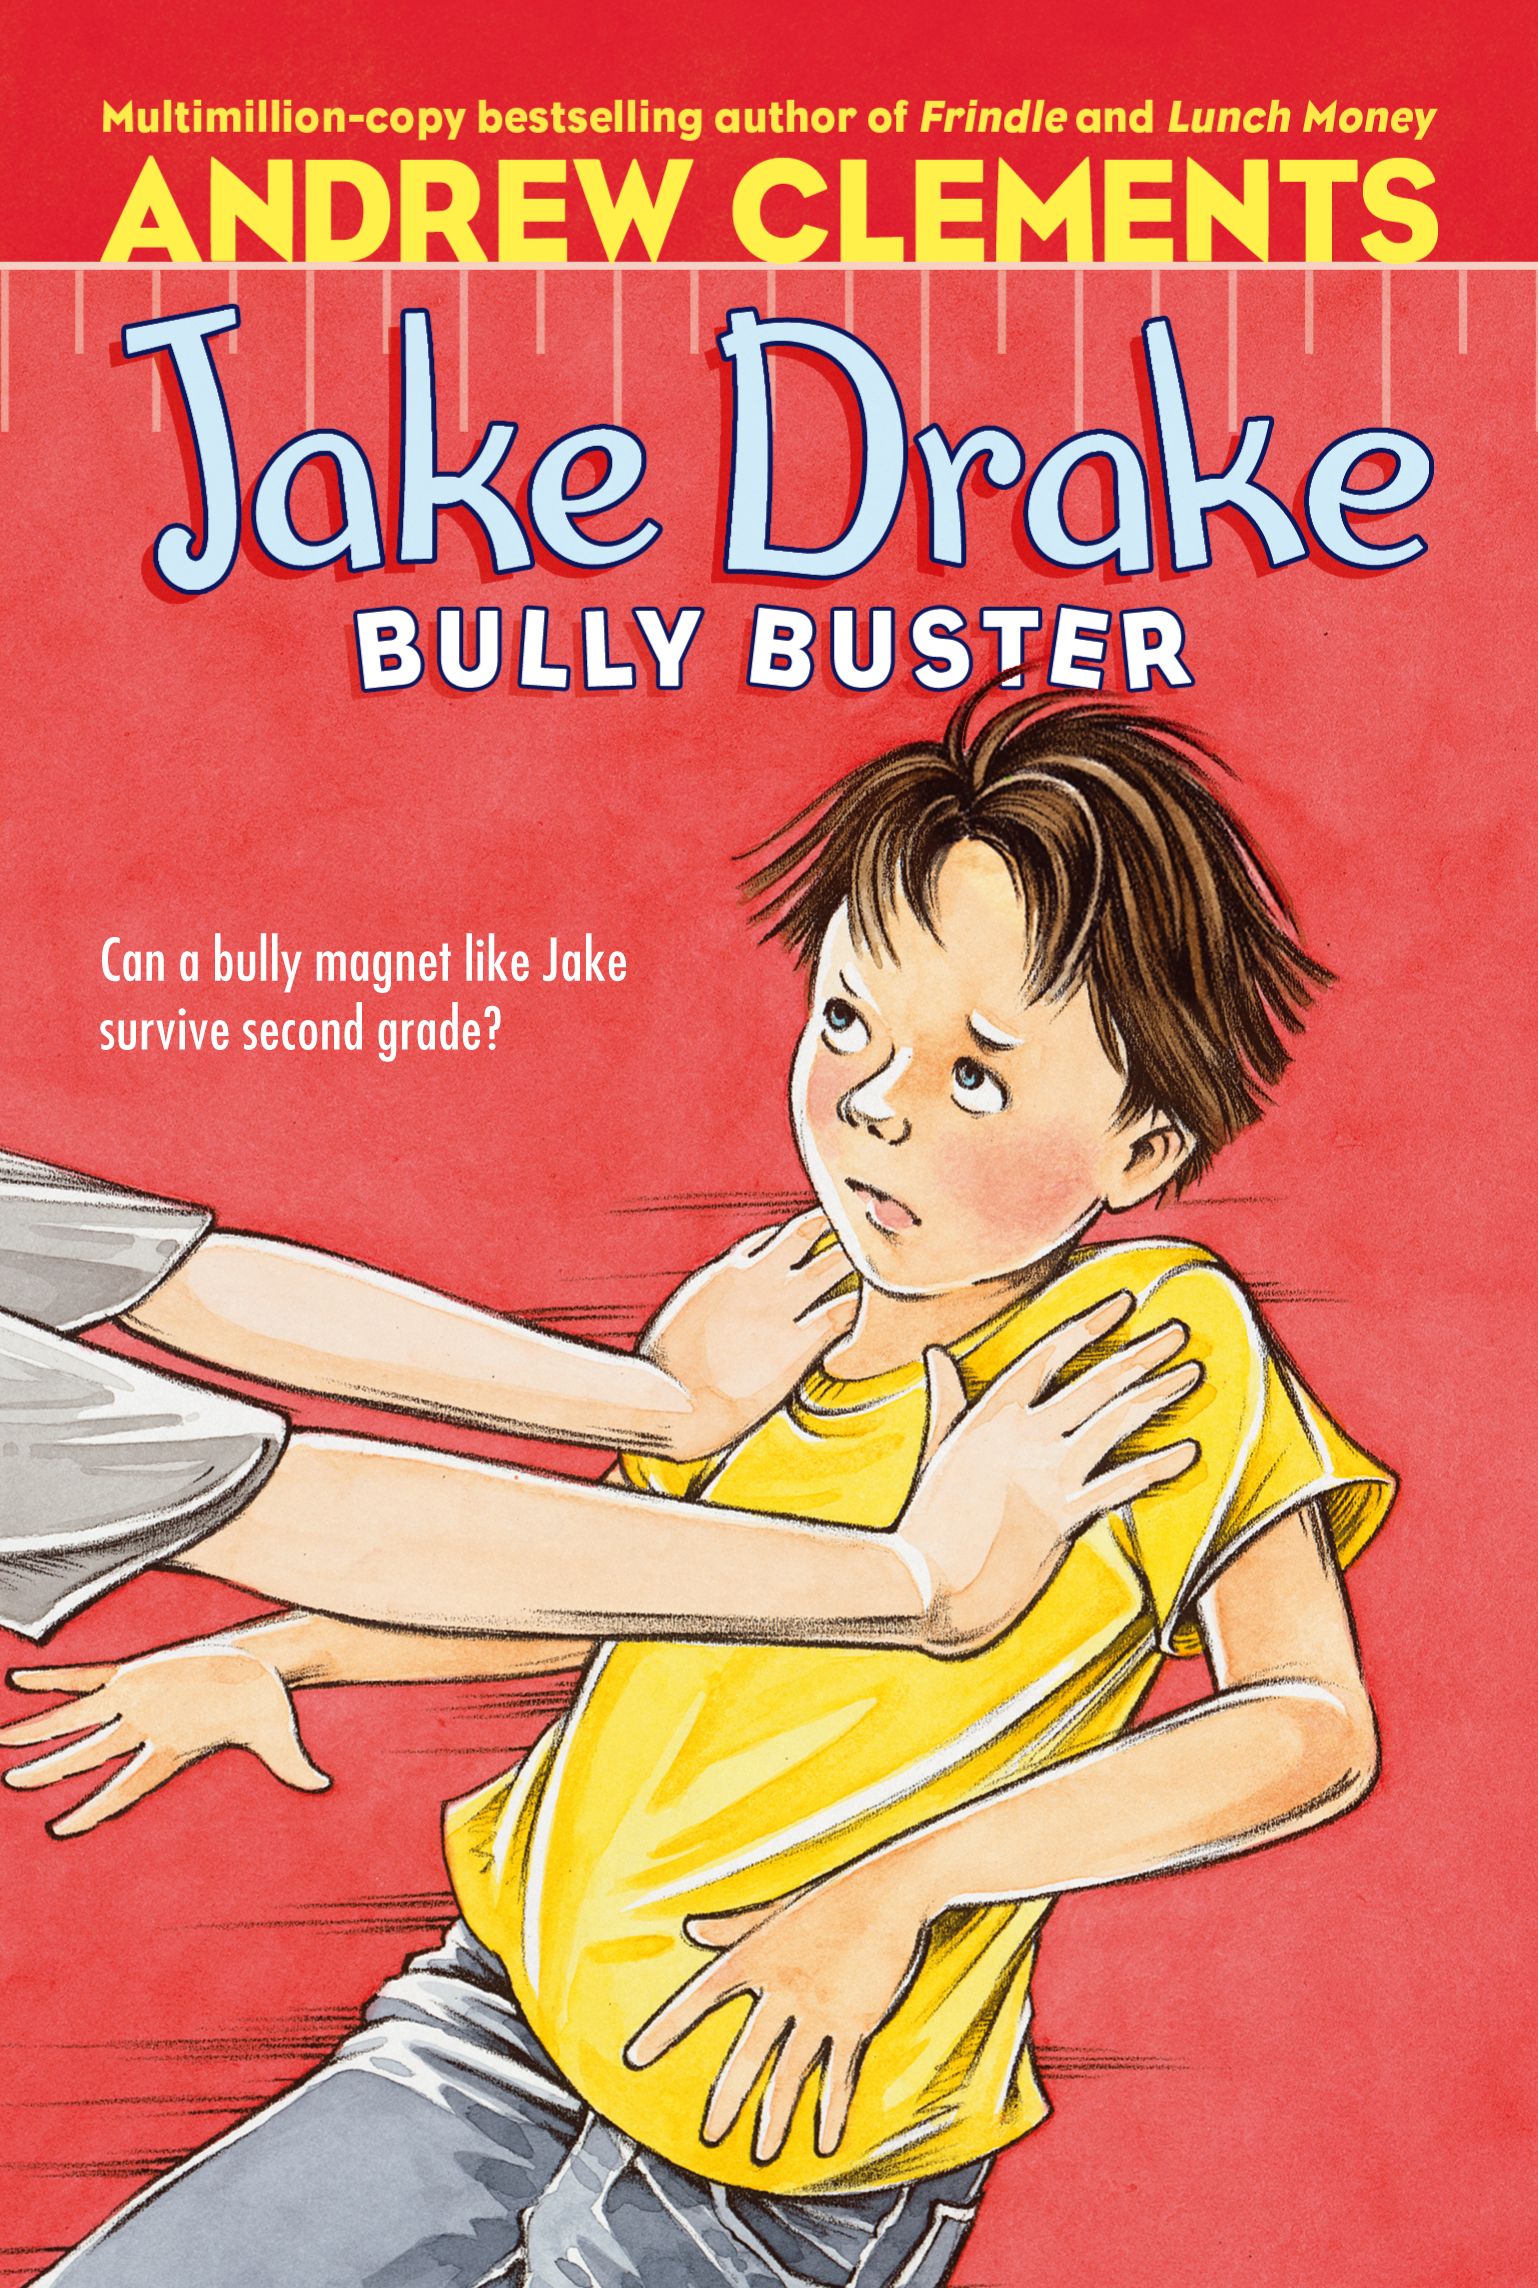 Image result for book cover jake drake bully